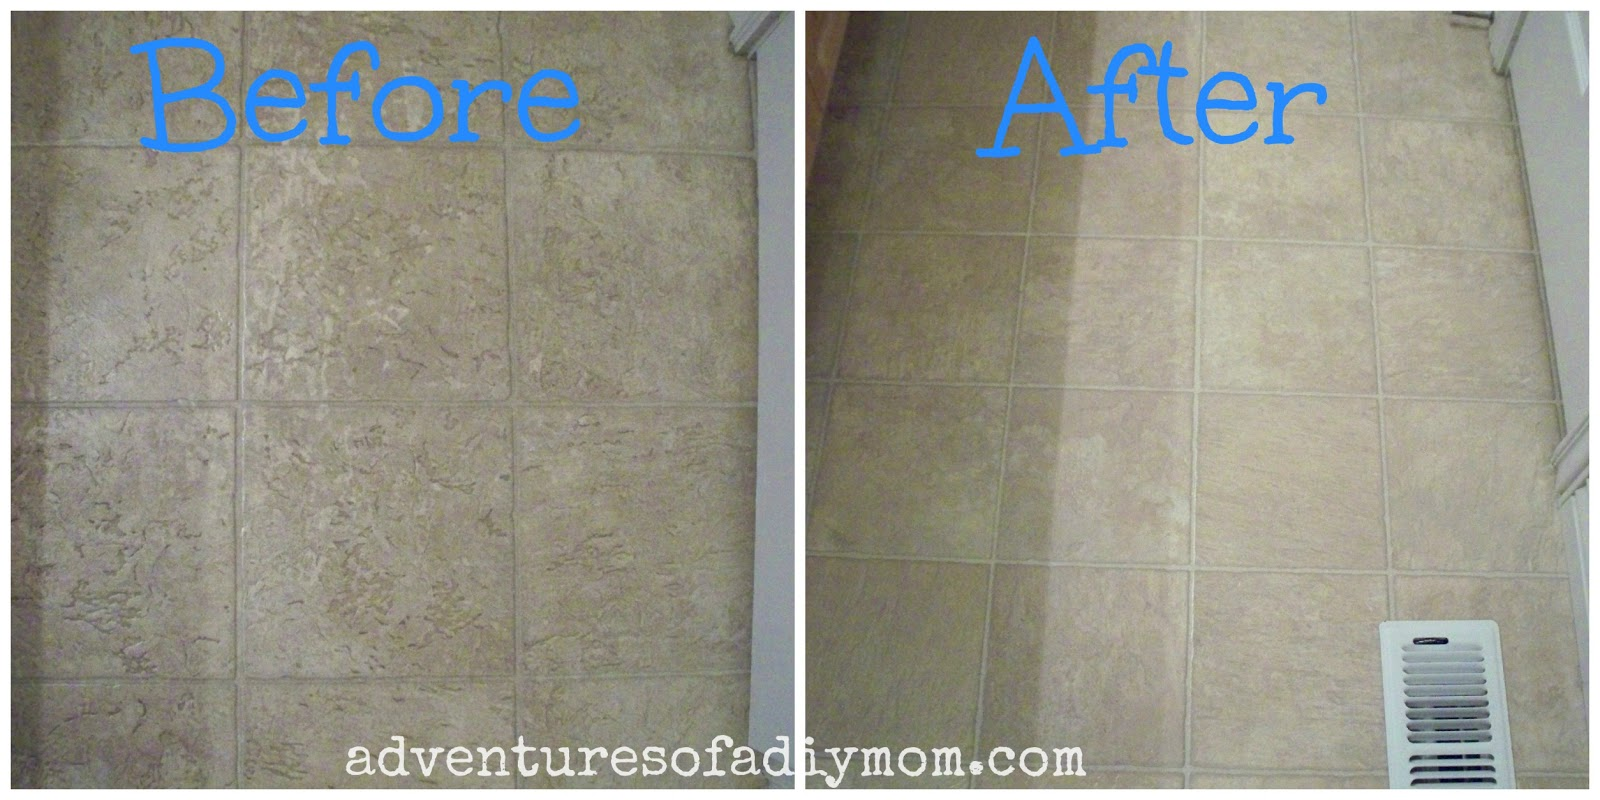 How To Remove Hairspray Residue From Floor Adventures Of A DIY Mom - Clean tile floors without residue